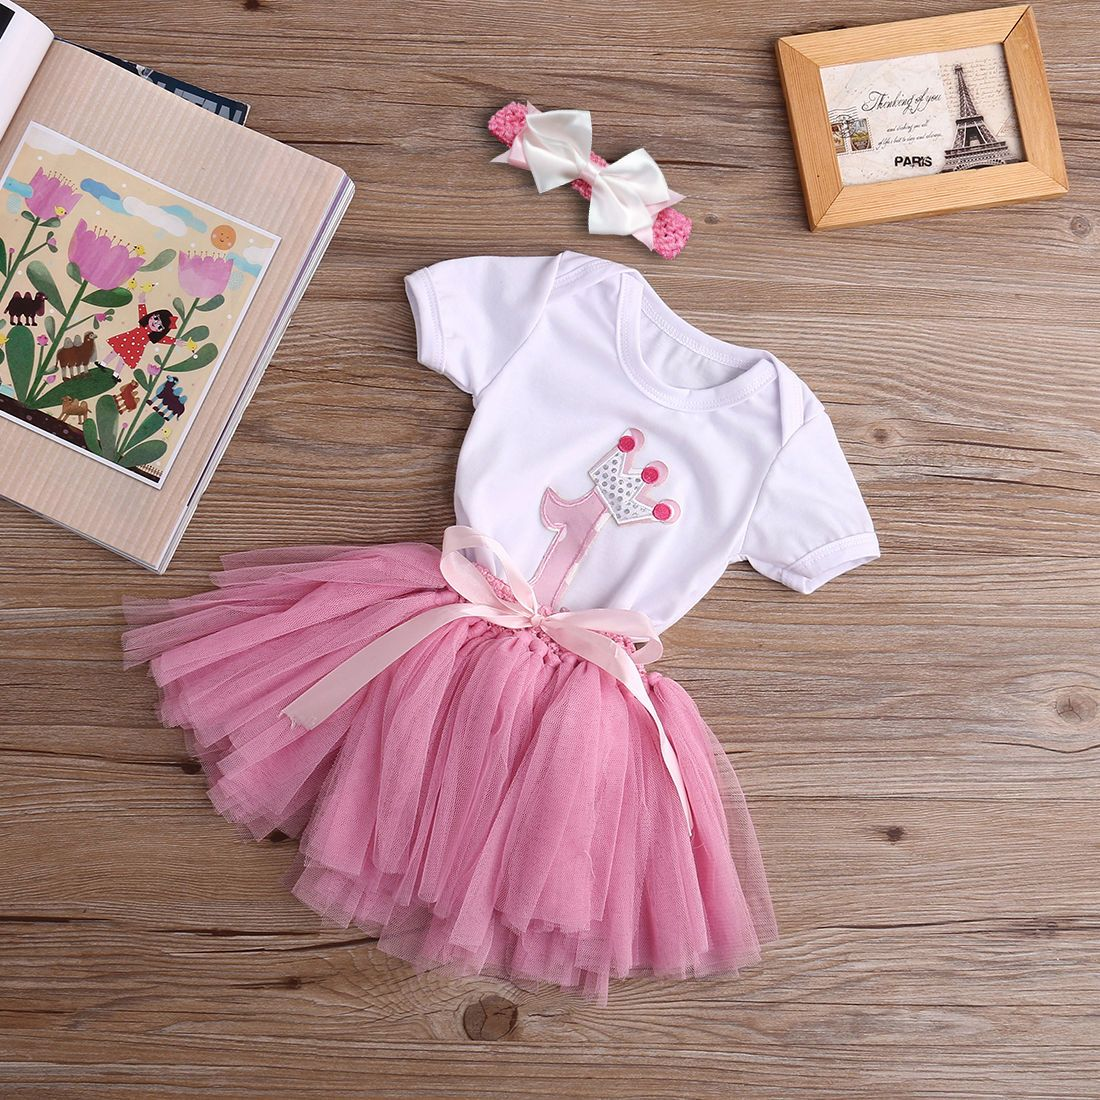 Baby Girls 1st Birthday Princess Sleeveless Floral Romper Tutu Skirt Outfit